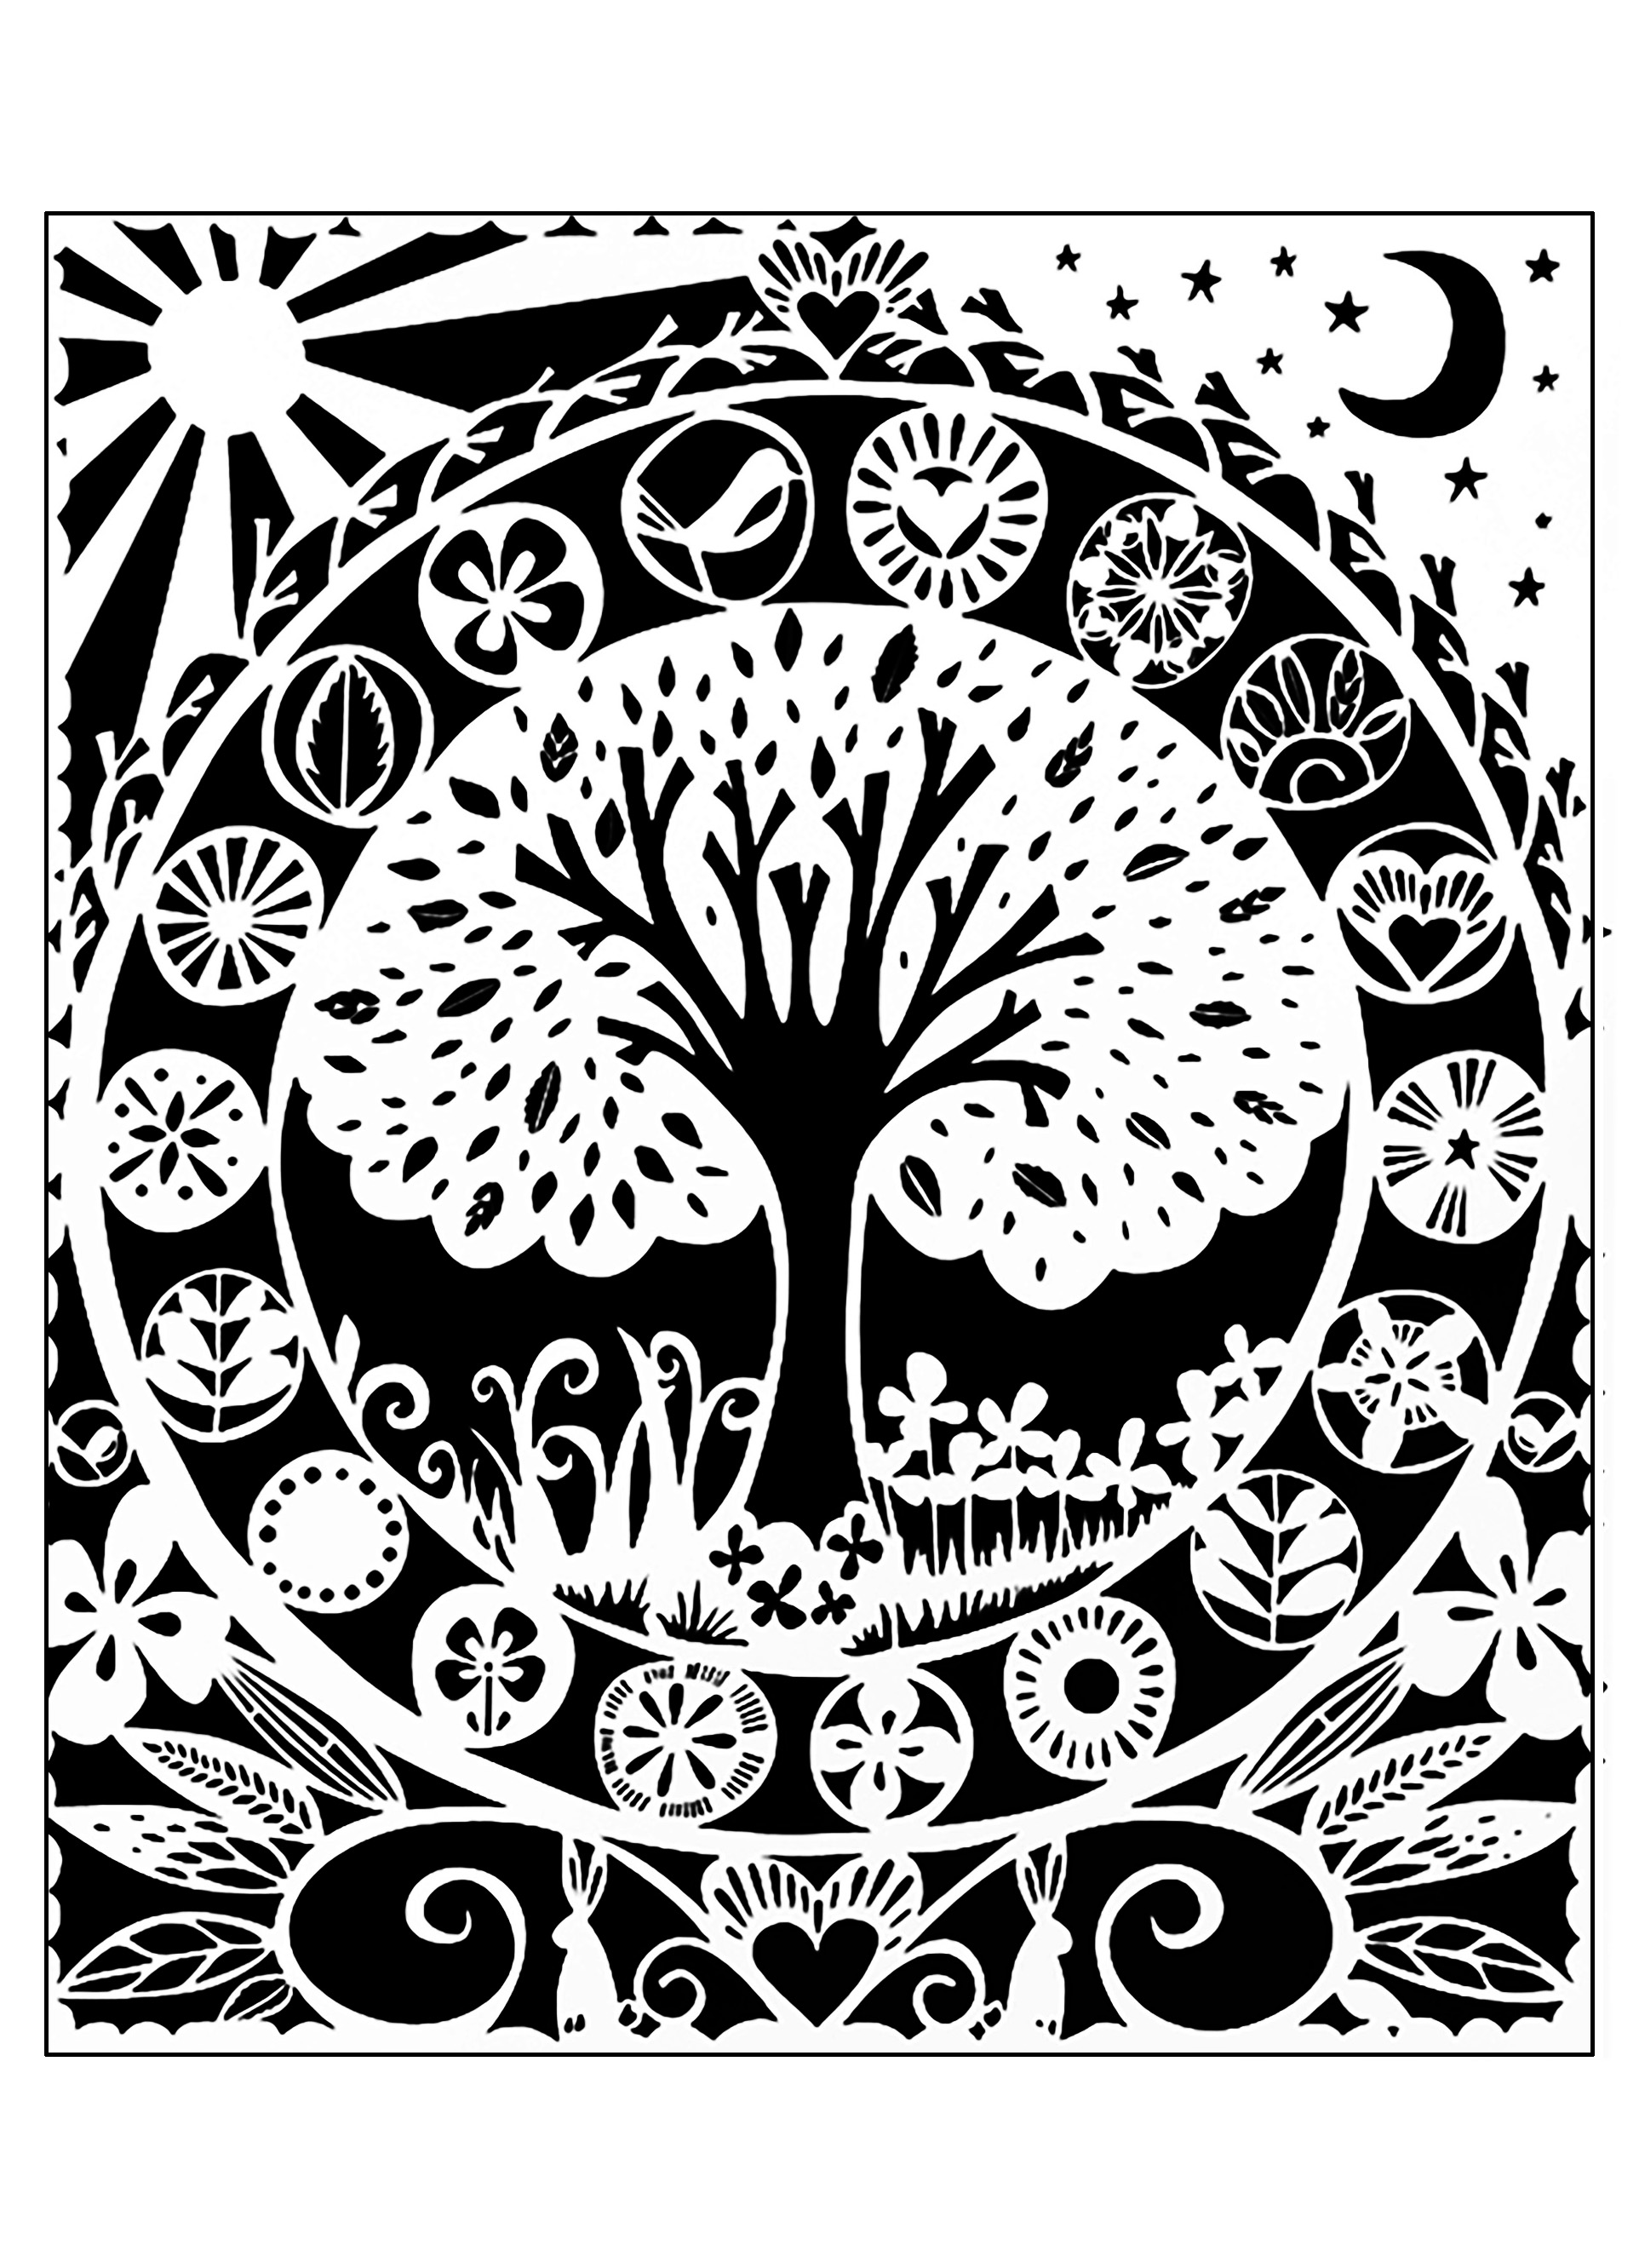 Coloring pages trees and flowers - Beautiful Tree To Color White Version From The Gallery Flowers And Vegetation